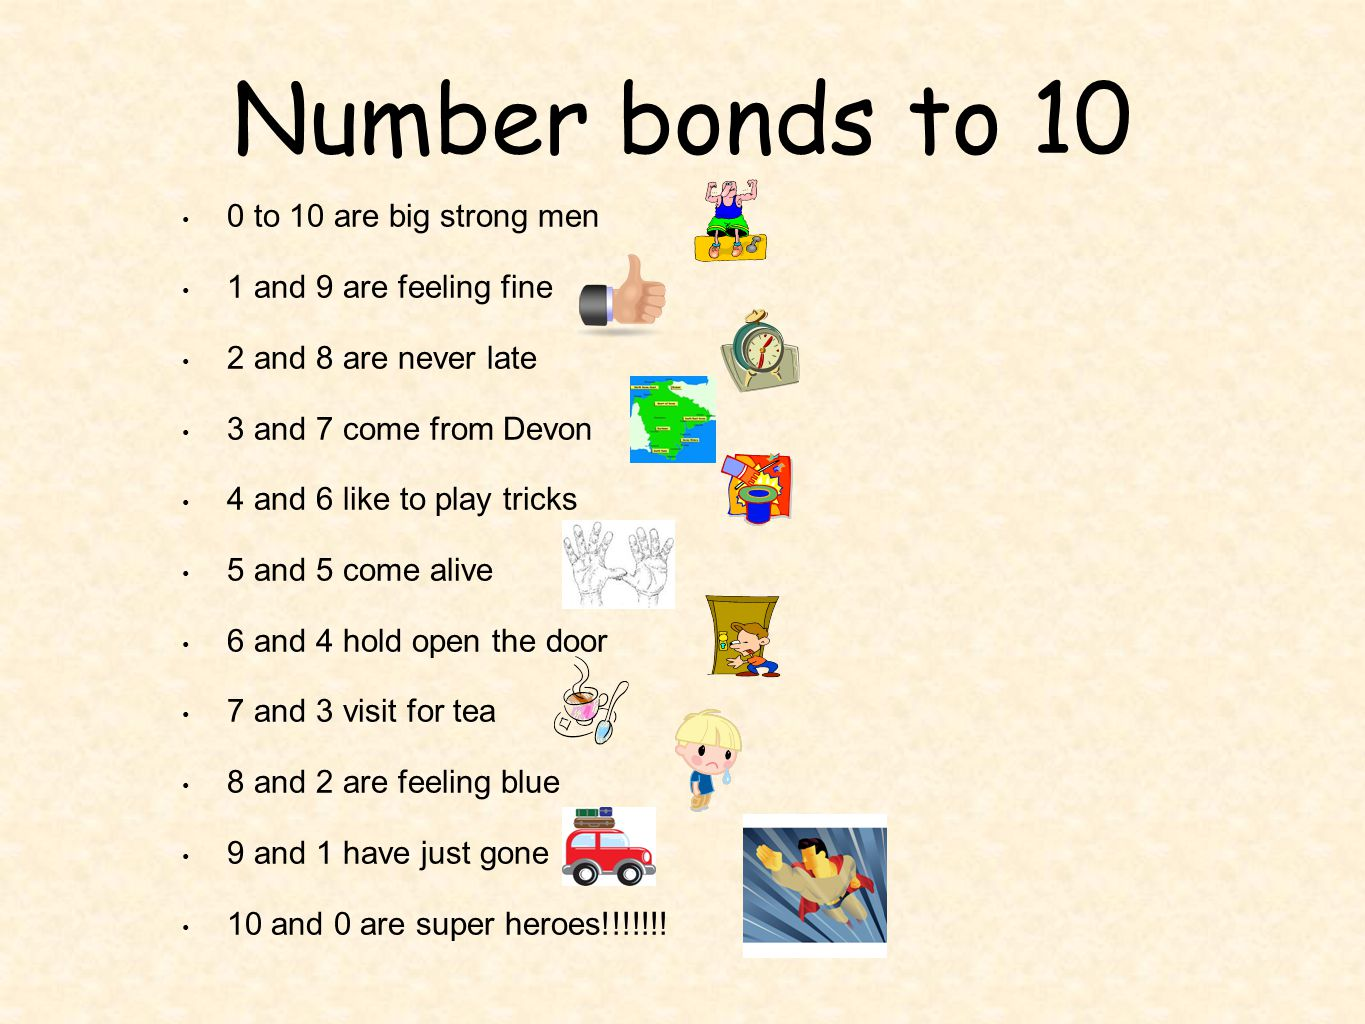 Number bonds to 10 0 to 10 are big strong men 1 and 9 are feeling fine 2 and 8 are never late 3 and 7 come from Devon 4 and 6 like to play tricks 5 and 5 come alive 6 and 4 hold open the door 7 and 3 visit for tea 8 and 2 are feeling blue 9 and 1 have just gone 10 and 0 are super heroes!!!!!!!